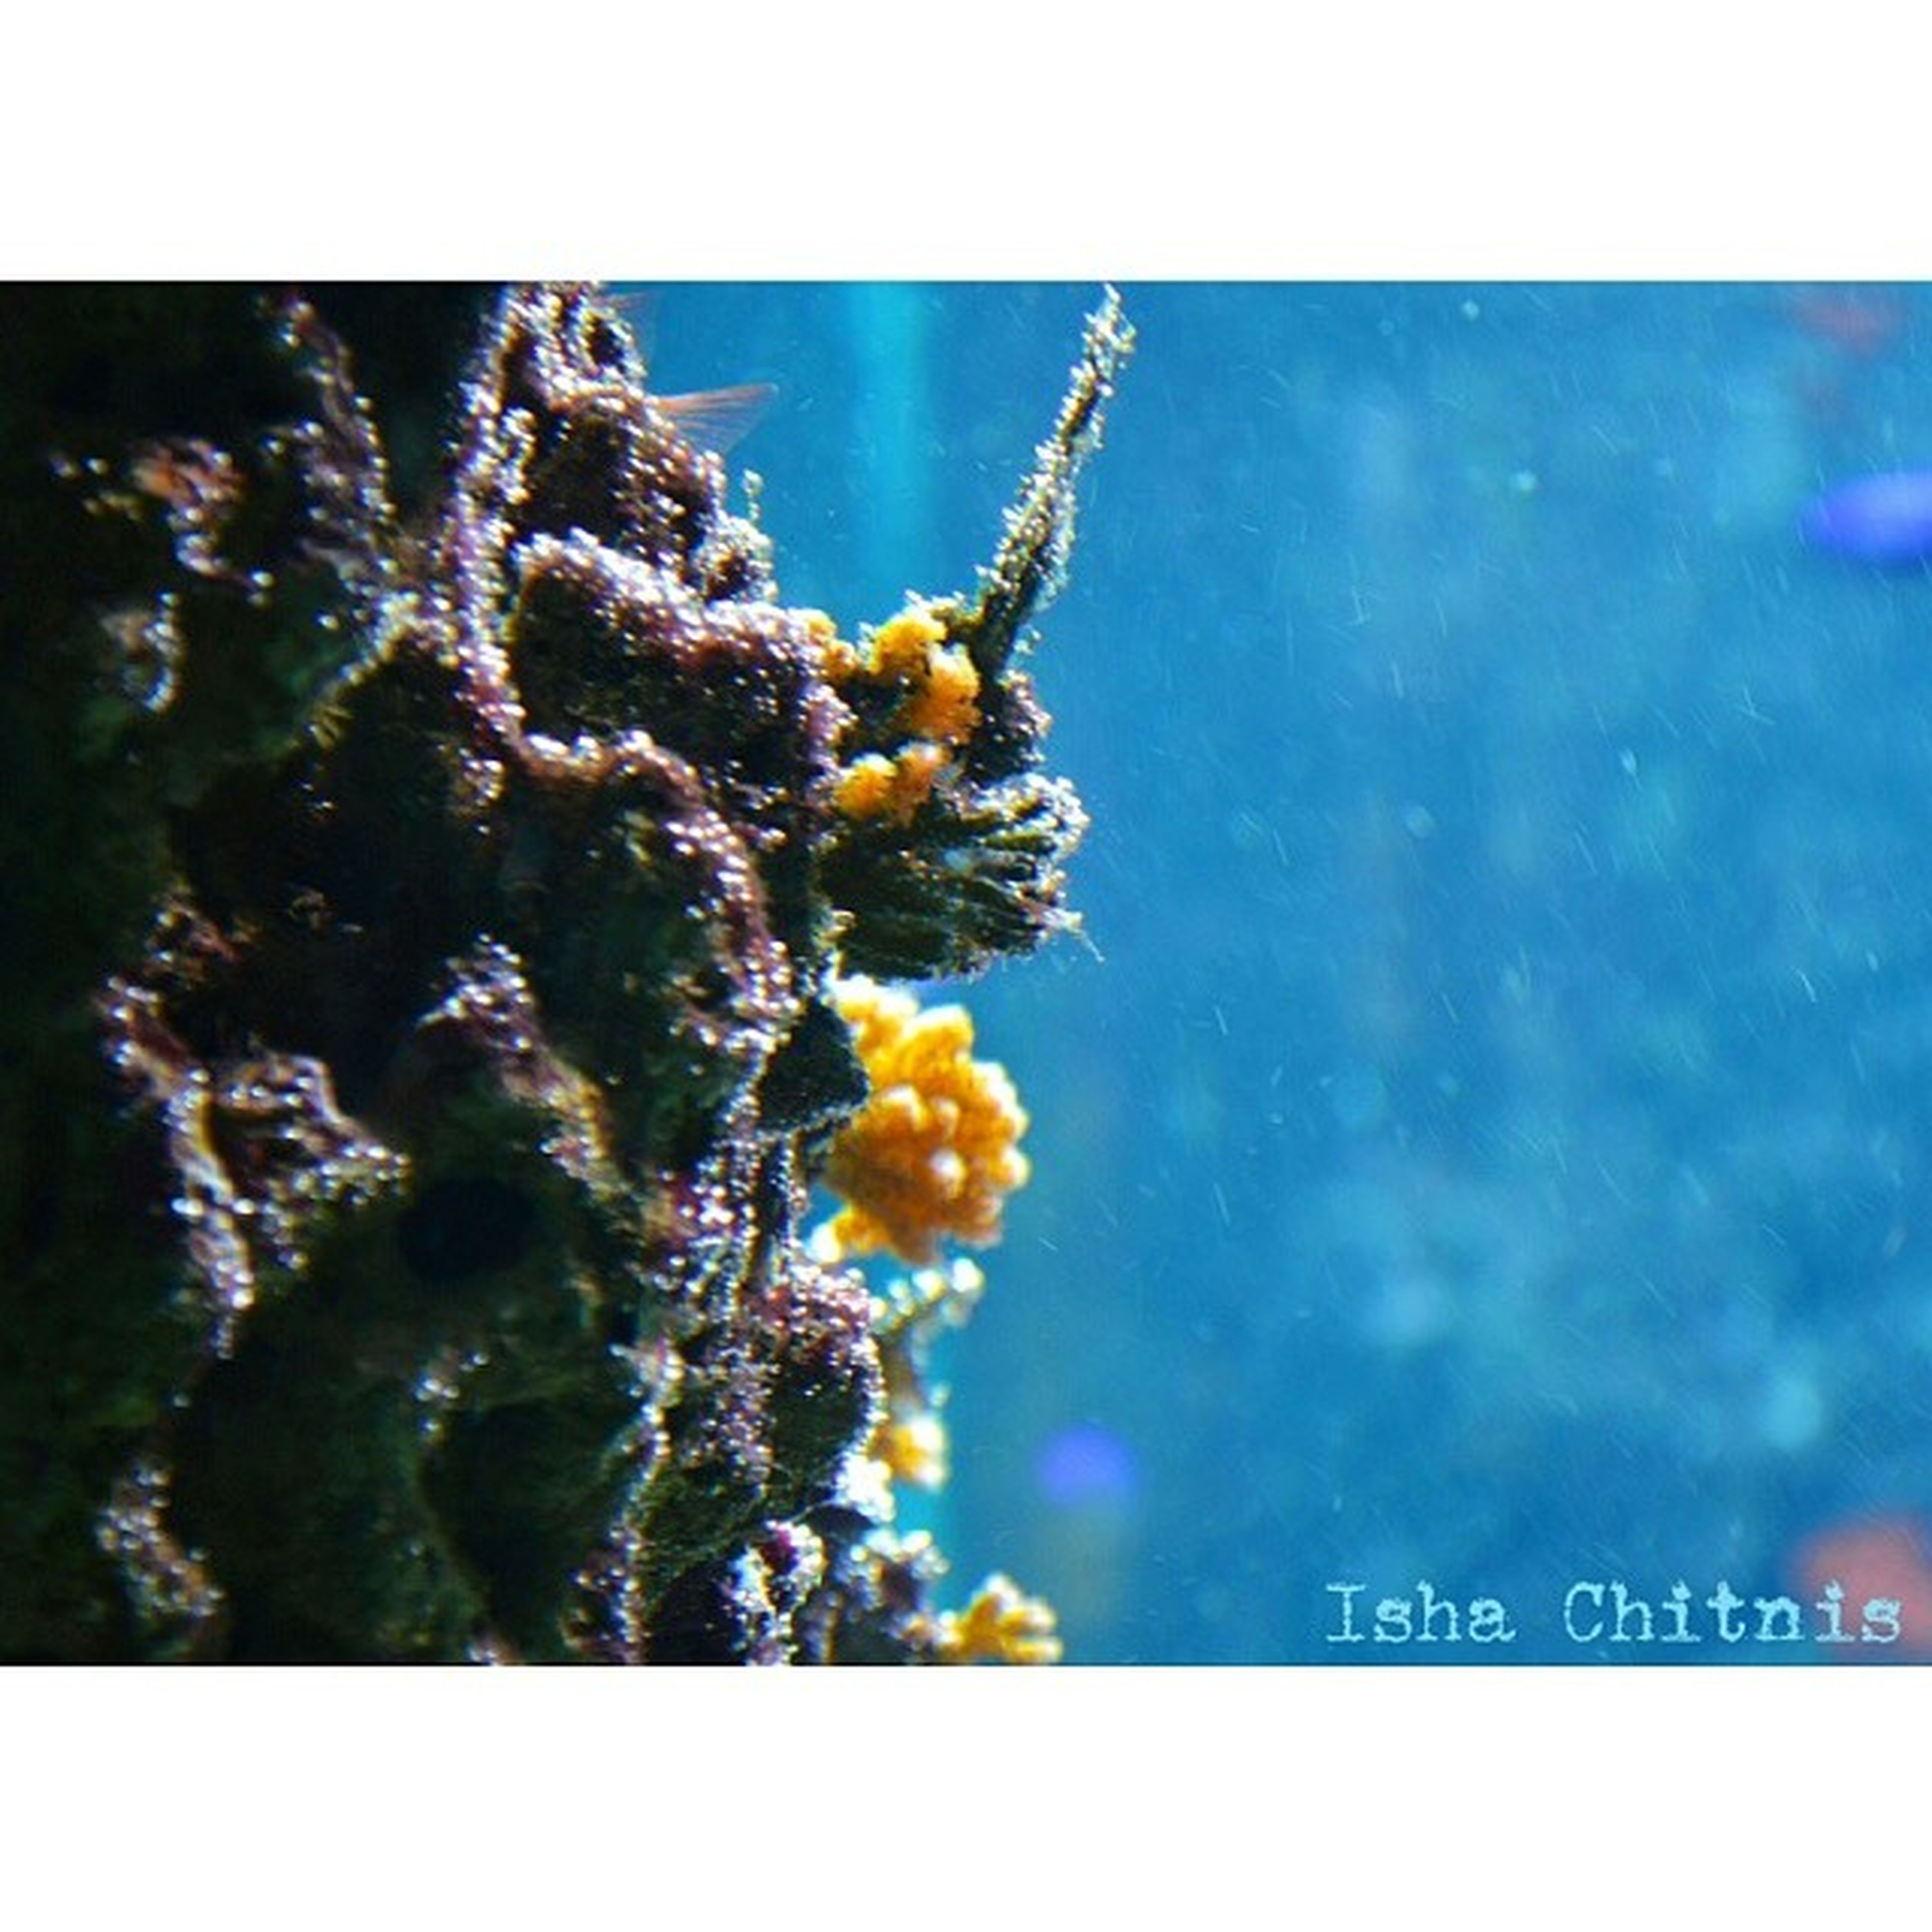 Blue!? Corals Blue Deepbluesee De instanature photography dslr